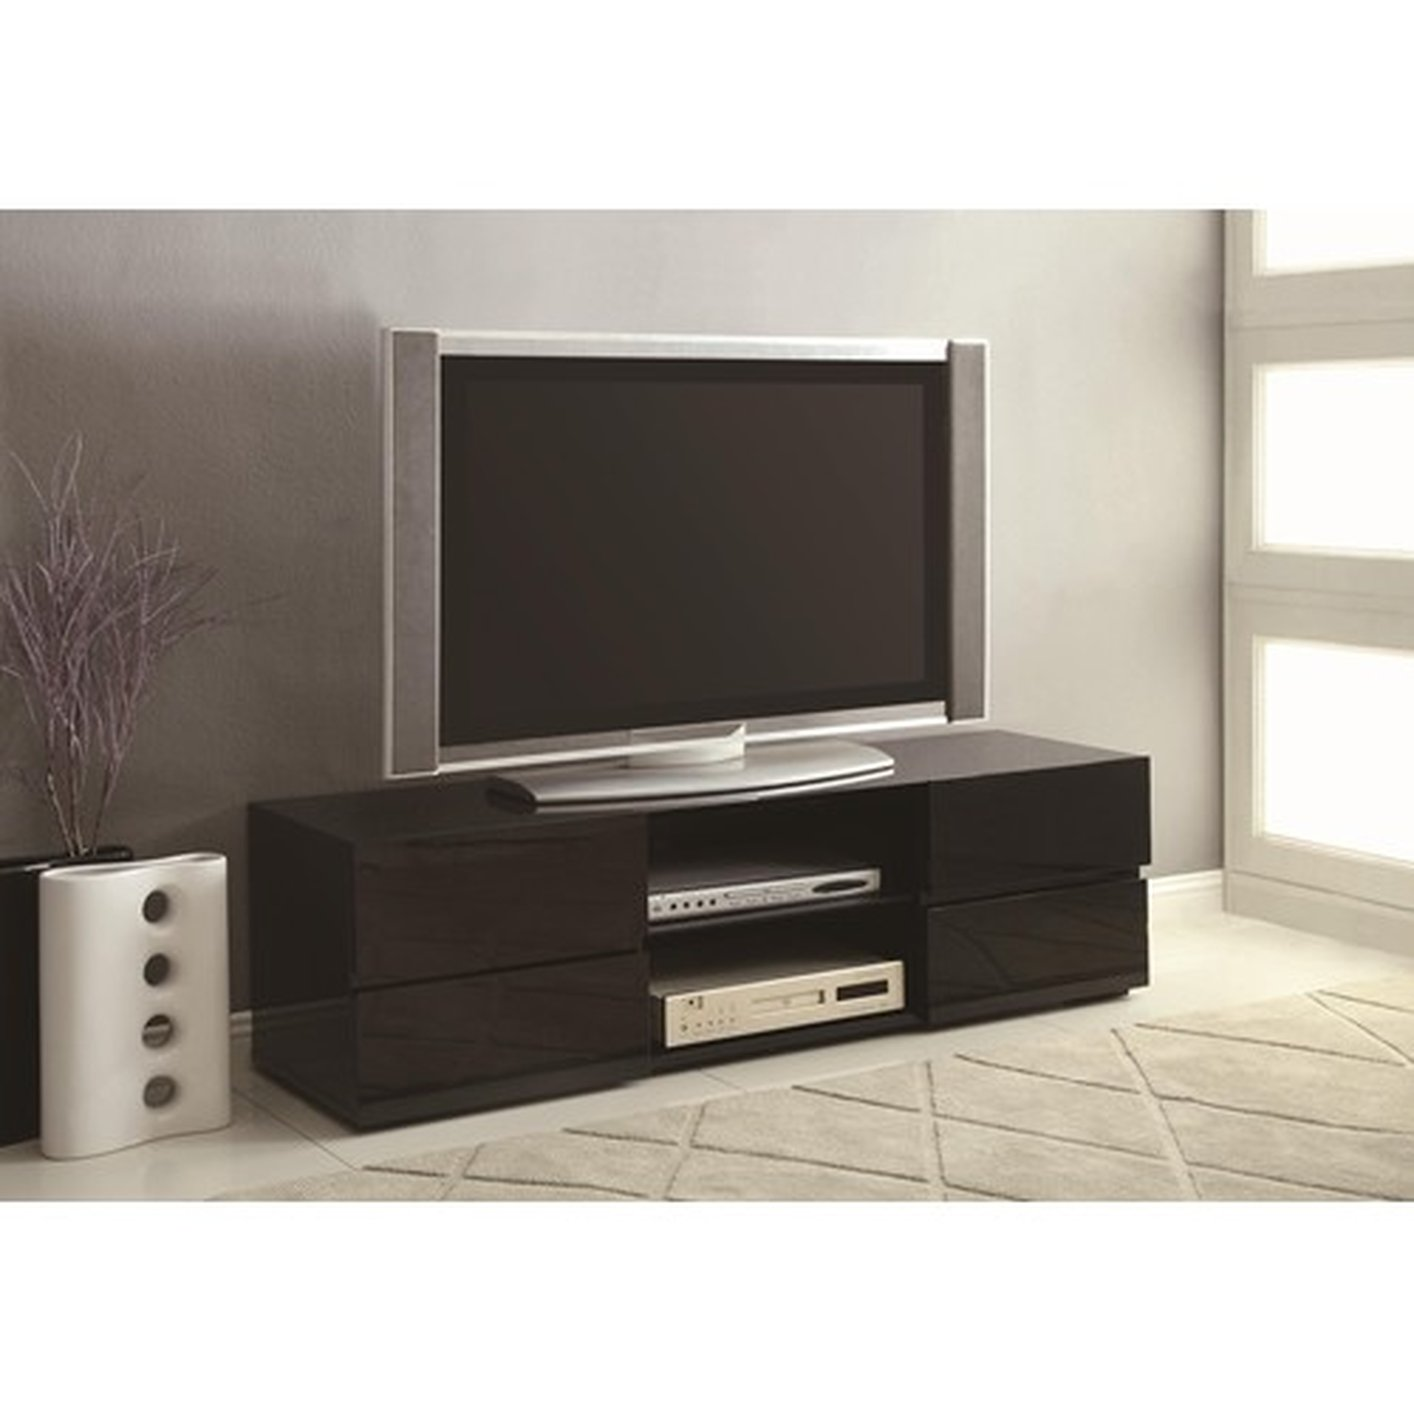 coaster 700841 black wood tv stand steal a sofa furniture outlet los angeles ca. Black Bedroom Furniture Sets. Home Design Ideas